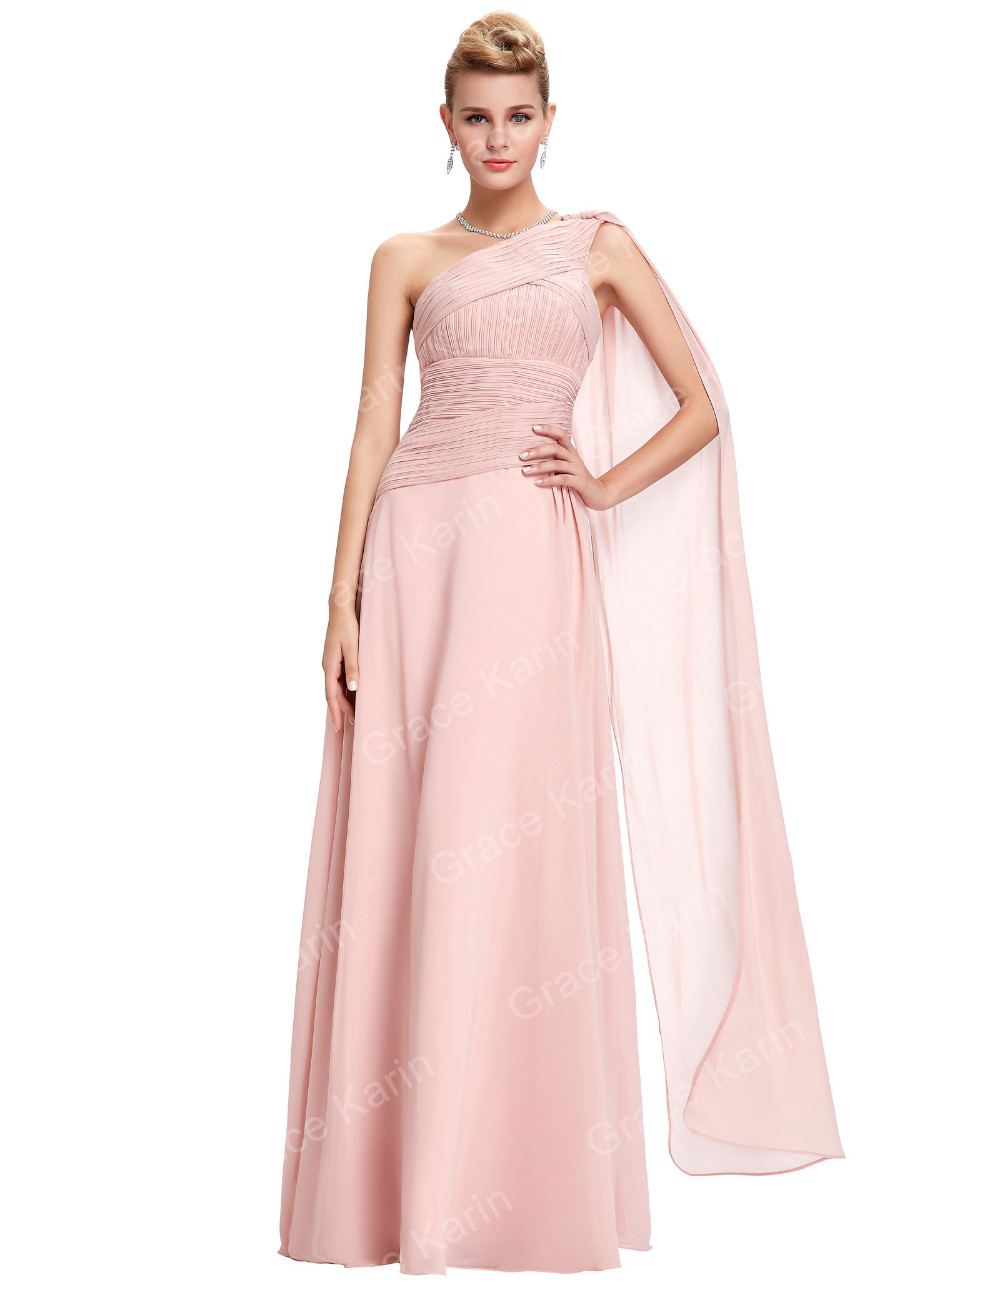 Grace Karin Sleeveless One Shoulder Chiffon Light Pink Weddings Bridesmaid Dresses GK000071-1